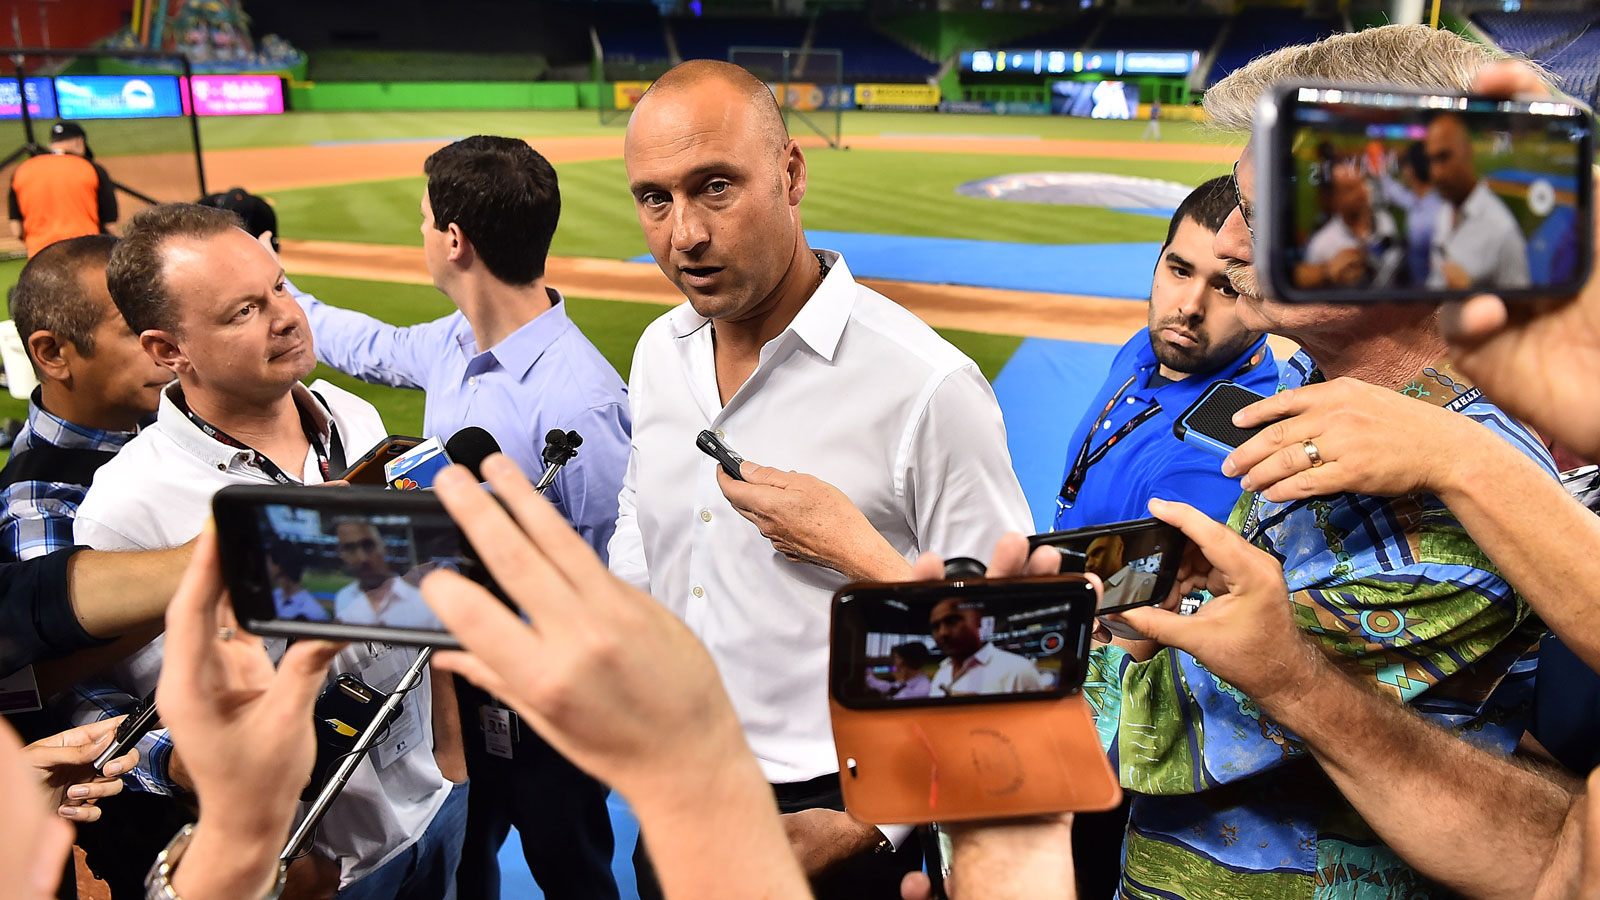 Derek Jeter says Marlins headed in right direction despite sub .500 record